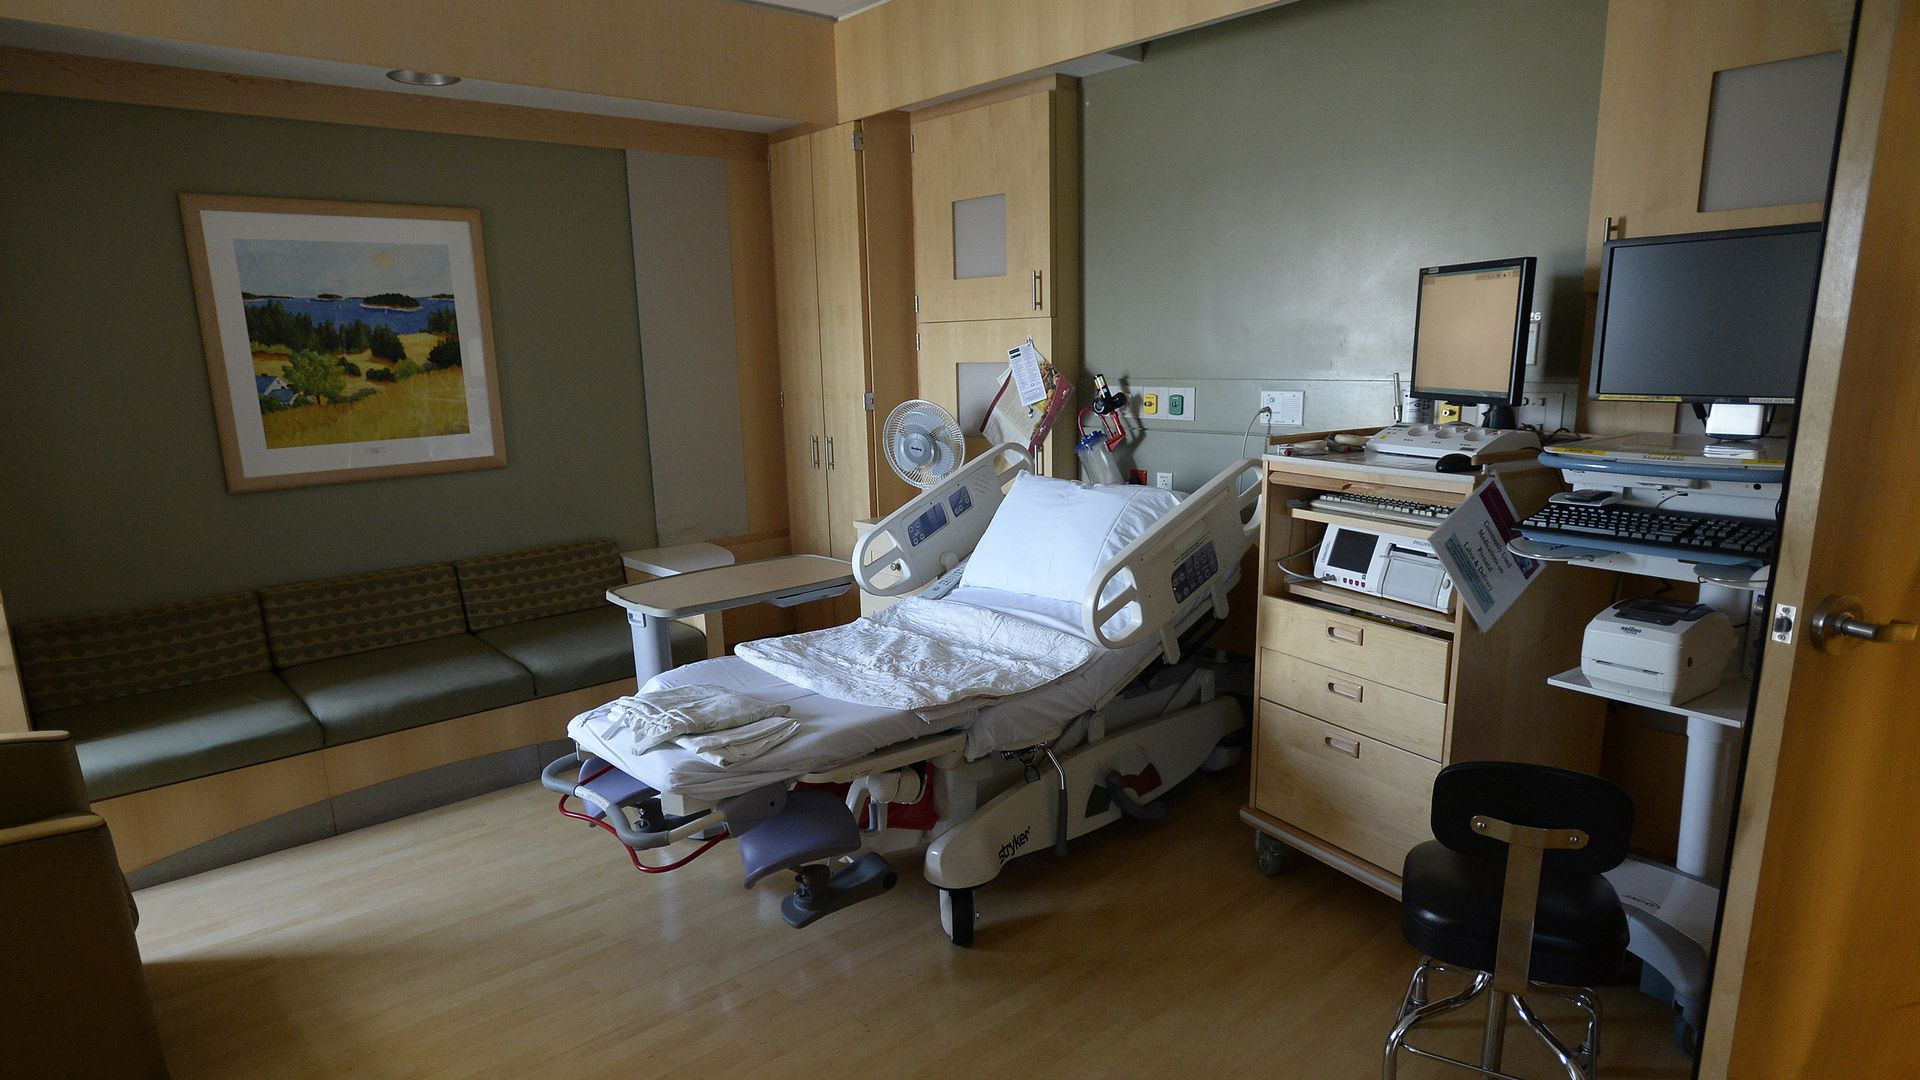 A room in a maternity ward